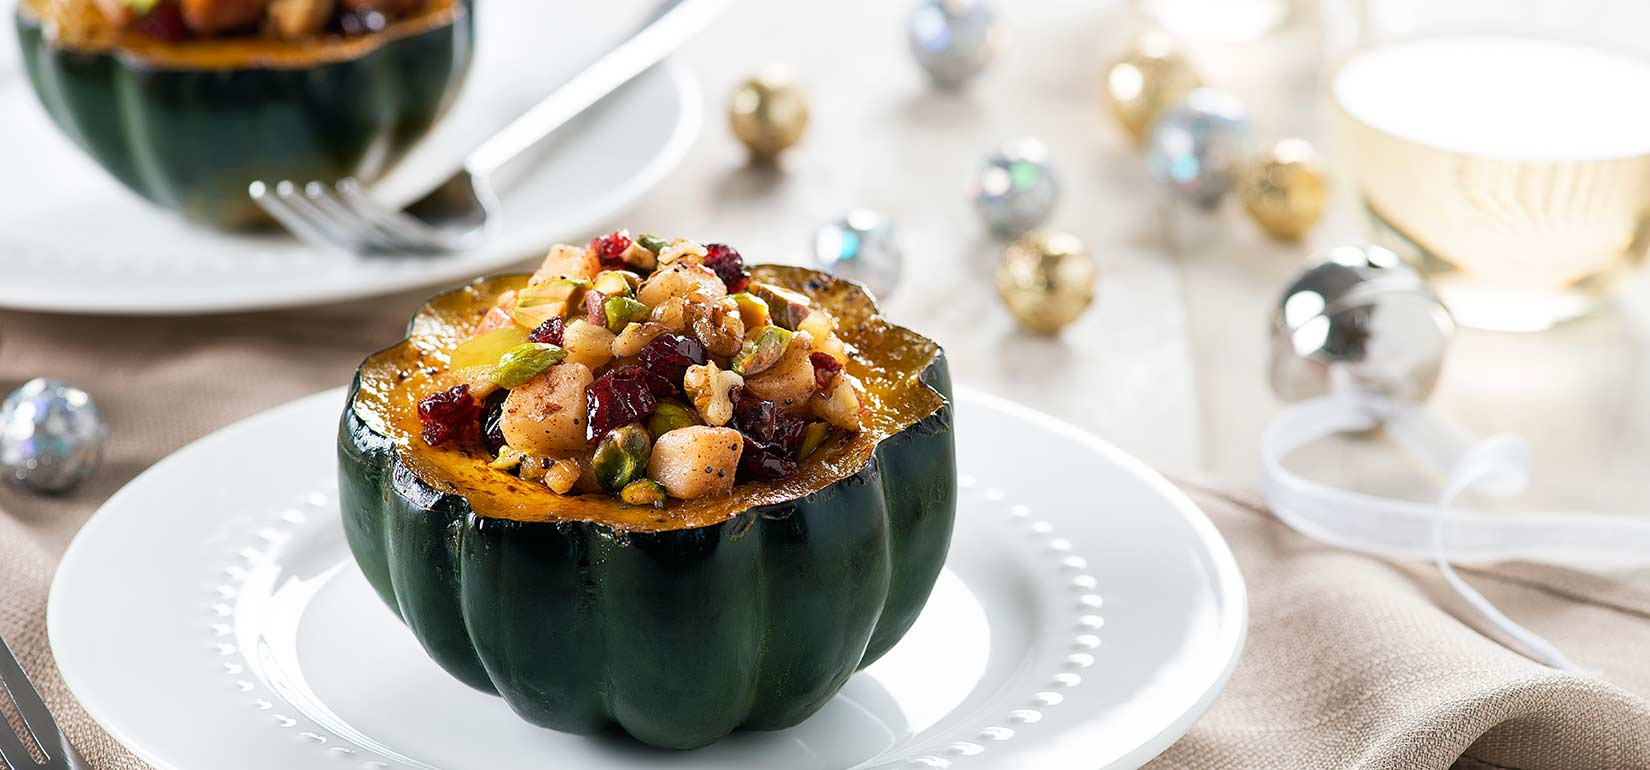 Simply Organic Holiday Organic Allspice Acorn Squash with Fruit and Nuts Recipe